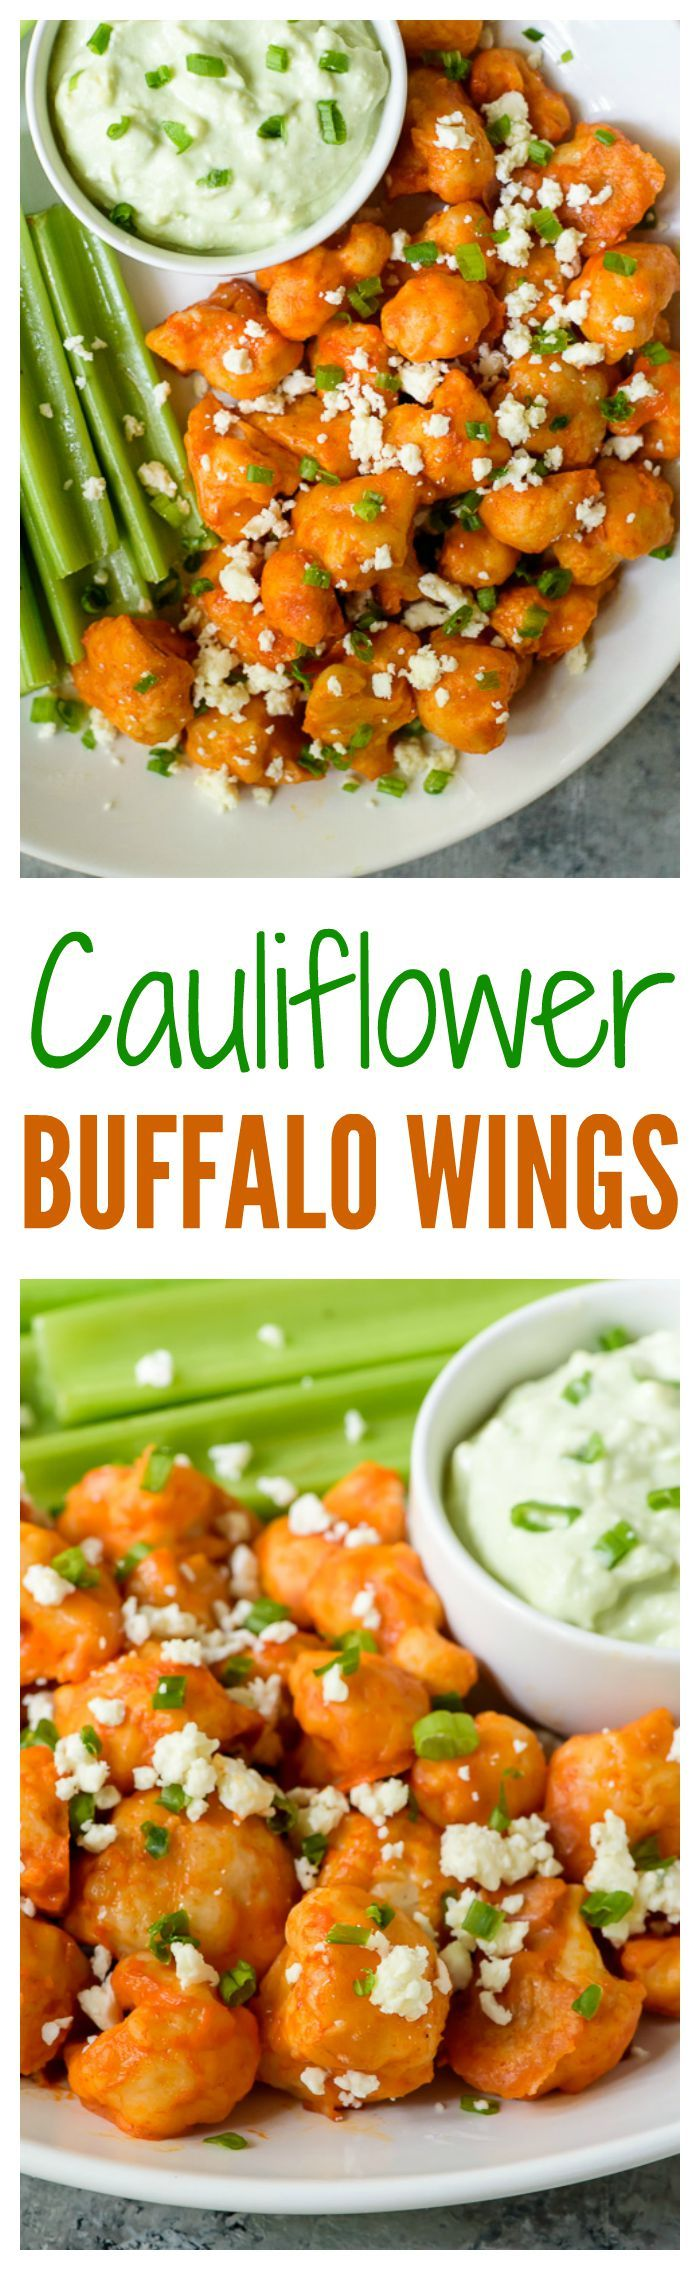 Cauliflower Buffalo Wings with Blue Cheese Avocado Dip  Light and crispy baked cauliflower bites with spicy Buffalo sauce  The perfect football party appetizer